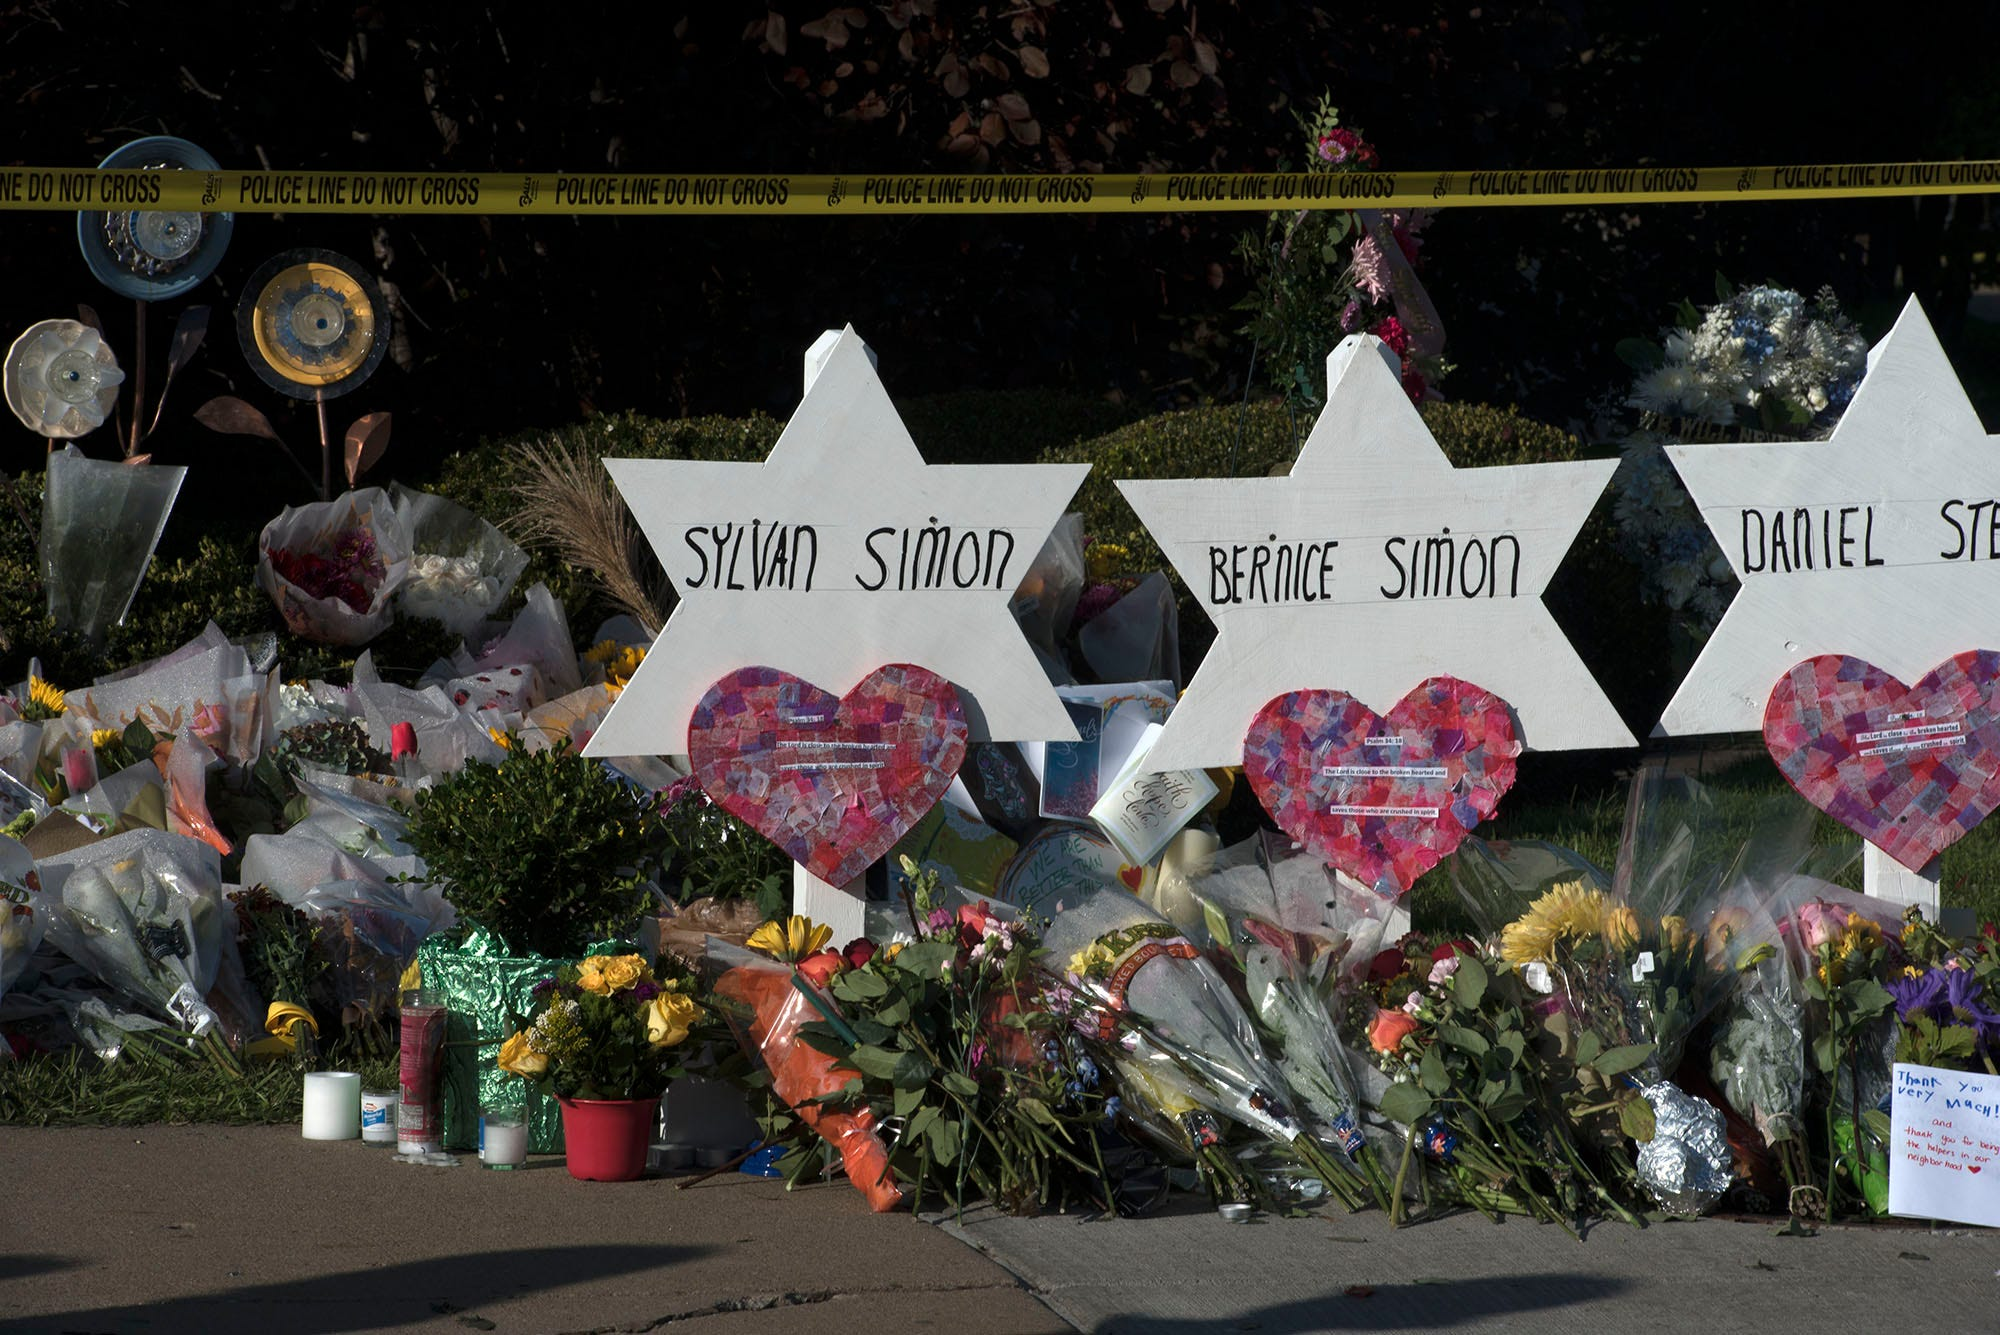 Mourners visited a memorial at a Pittsburgh neighborhood's synagogue. A gunman entered the Tree of Life Congregation Synagogue in the Squirrel Hill neighborhood of Pittsburgh and opened fire on the congregants and engaged police, Saturday morning, according to officials. (Markell DeLoatch, Public Opinion/via USA Today Network)